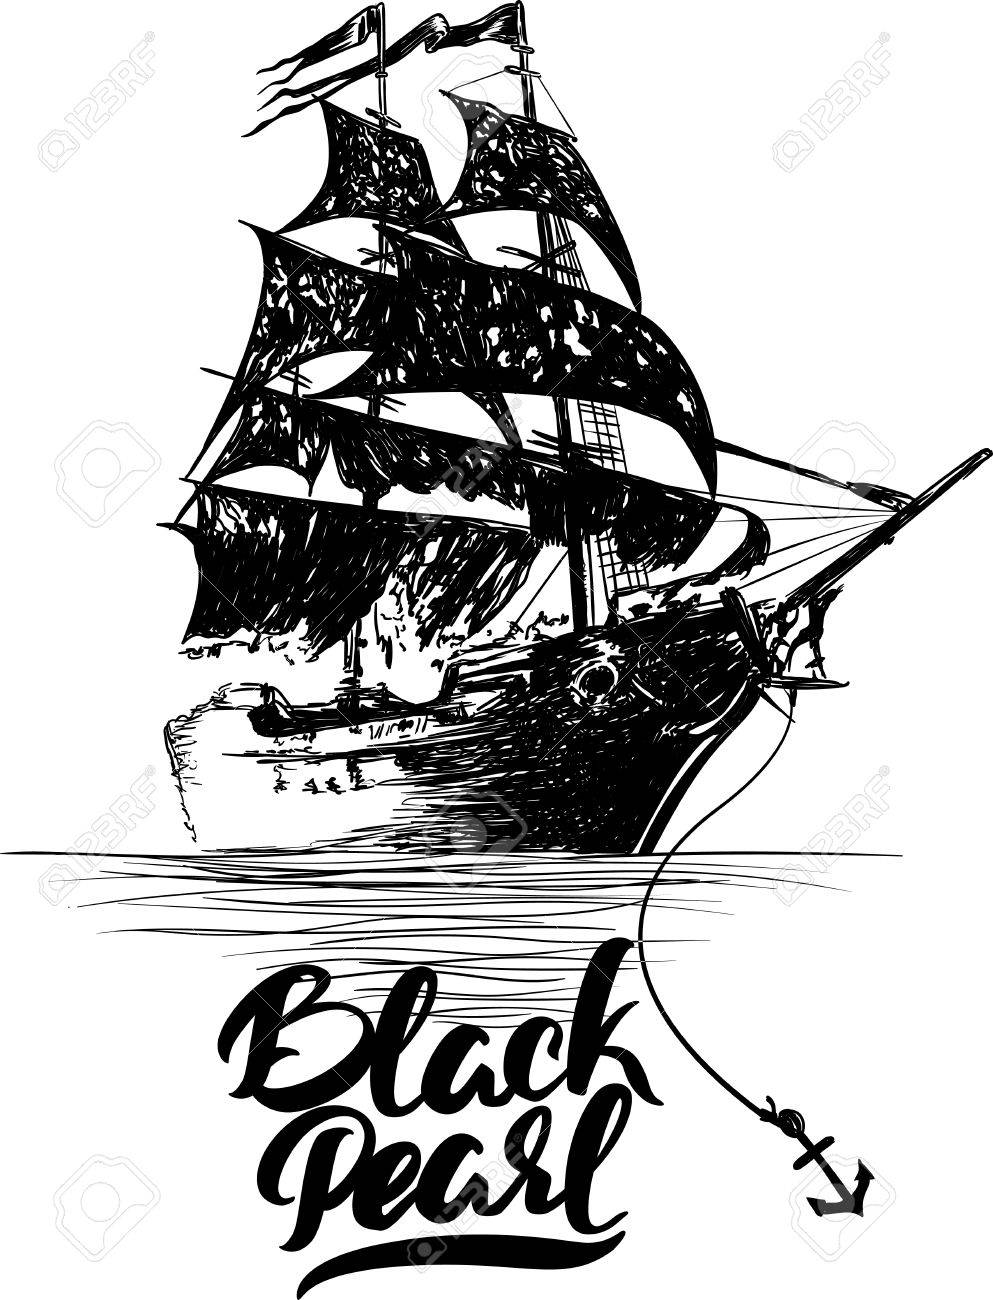 Pirate ship - hand drawn vector illustration, Black pearl lettering. - 61485801